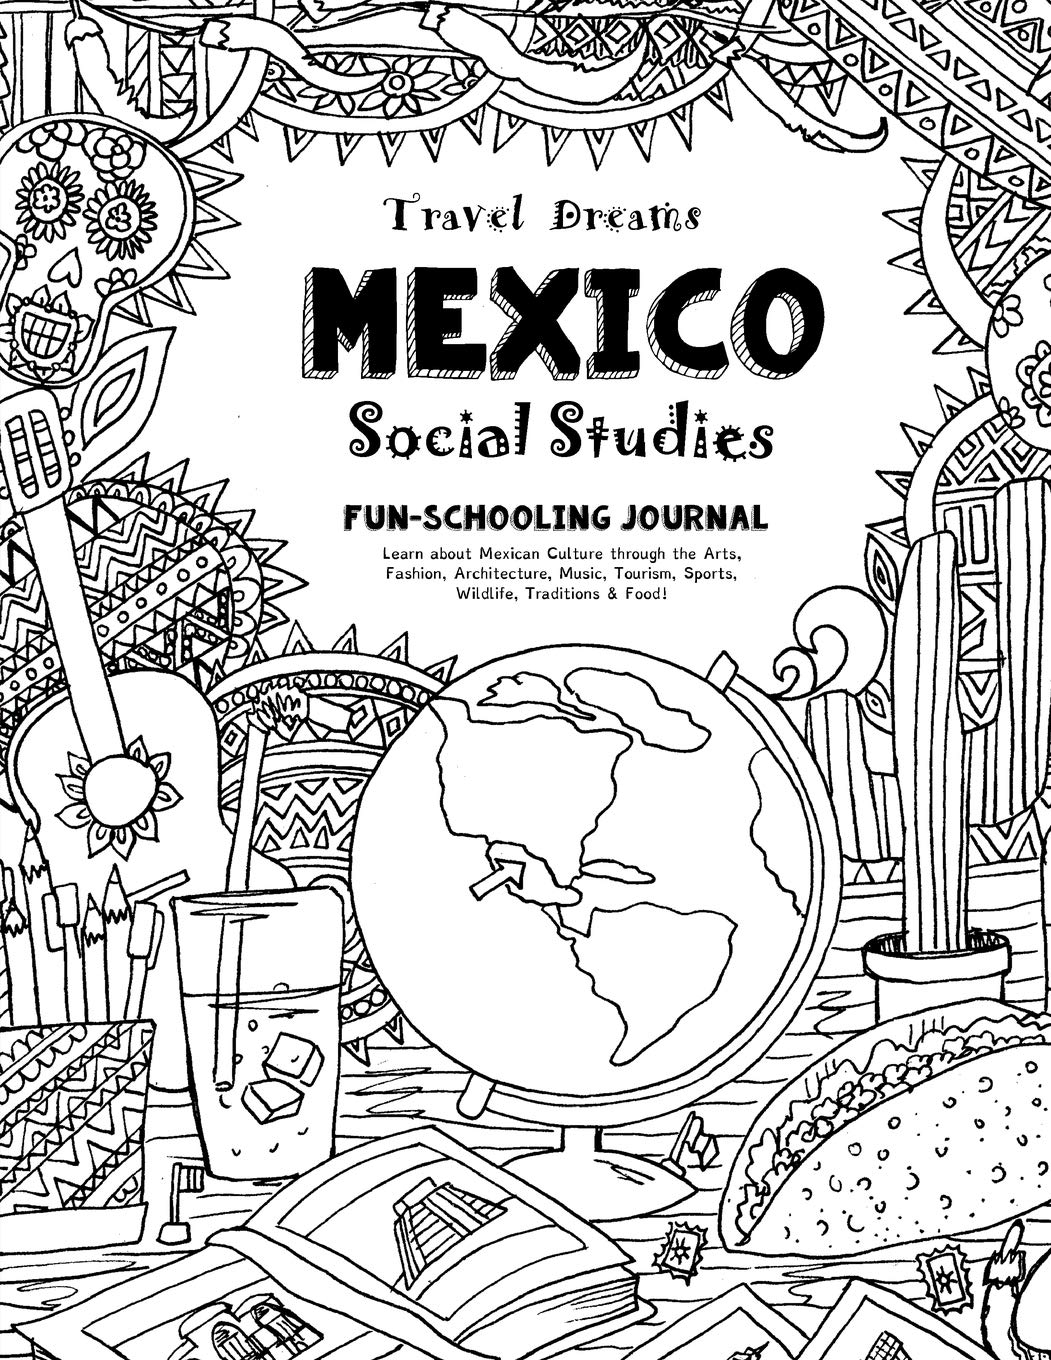 Download Travel Dreams Mexico - Social Studies Fun-Schooling Journal: Learn about Mexican Culture through the Arts, Fashion, Architecture, Music, Tourism, ... (Travel Dreams - Social Studies) (Volume 12) PDF